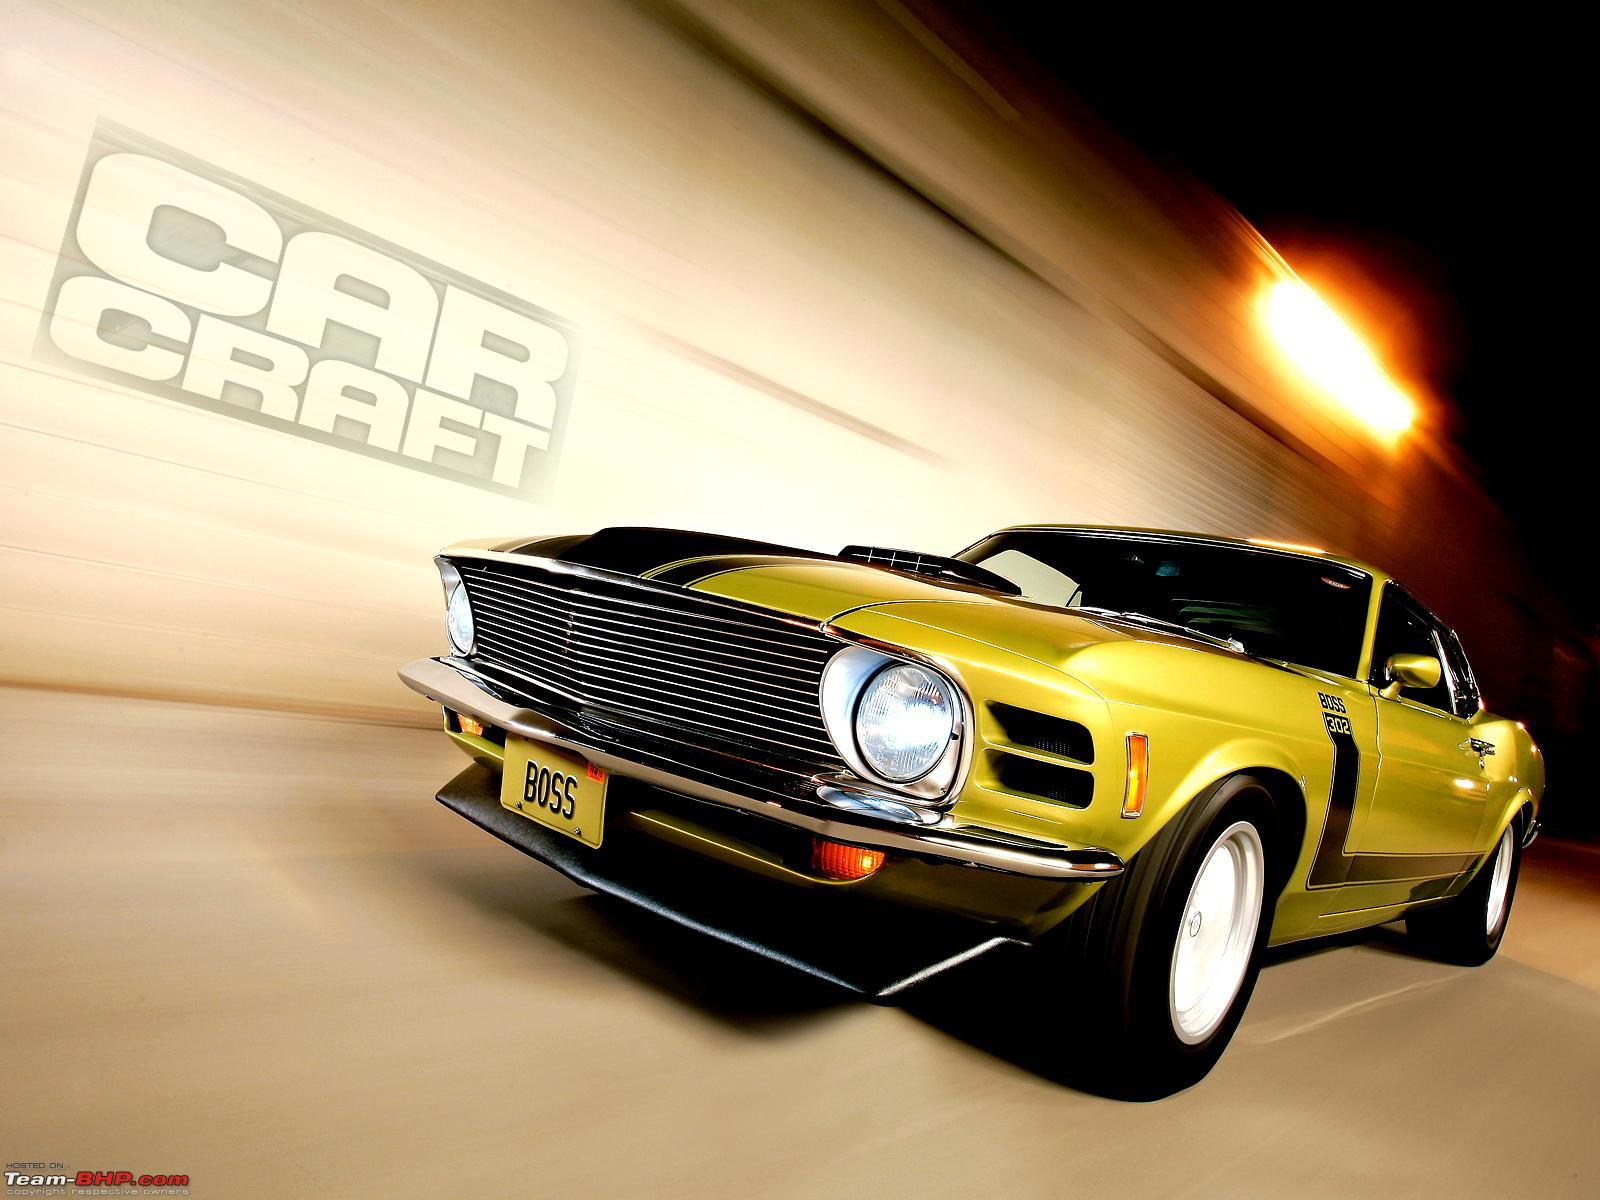 Import Car Wallpapers Indian Muscle Car Mod A Modernized Contessa W Wip